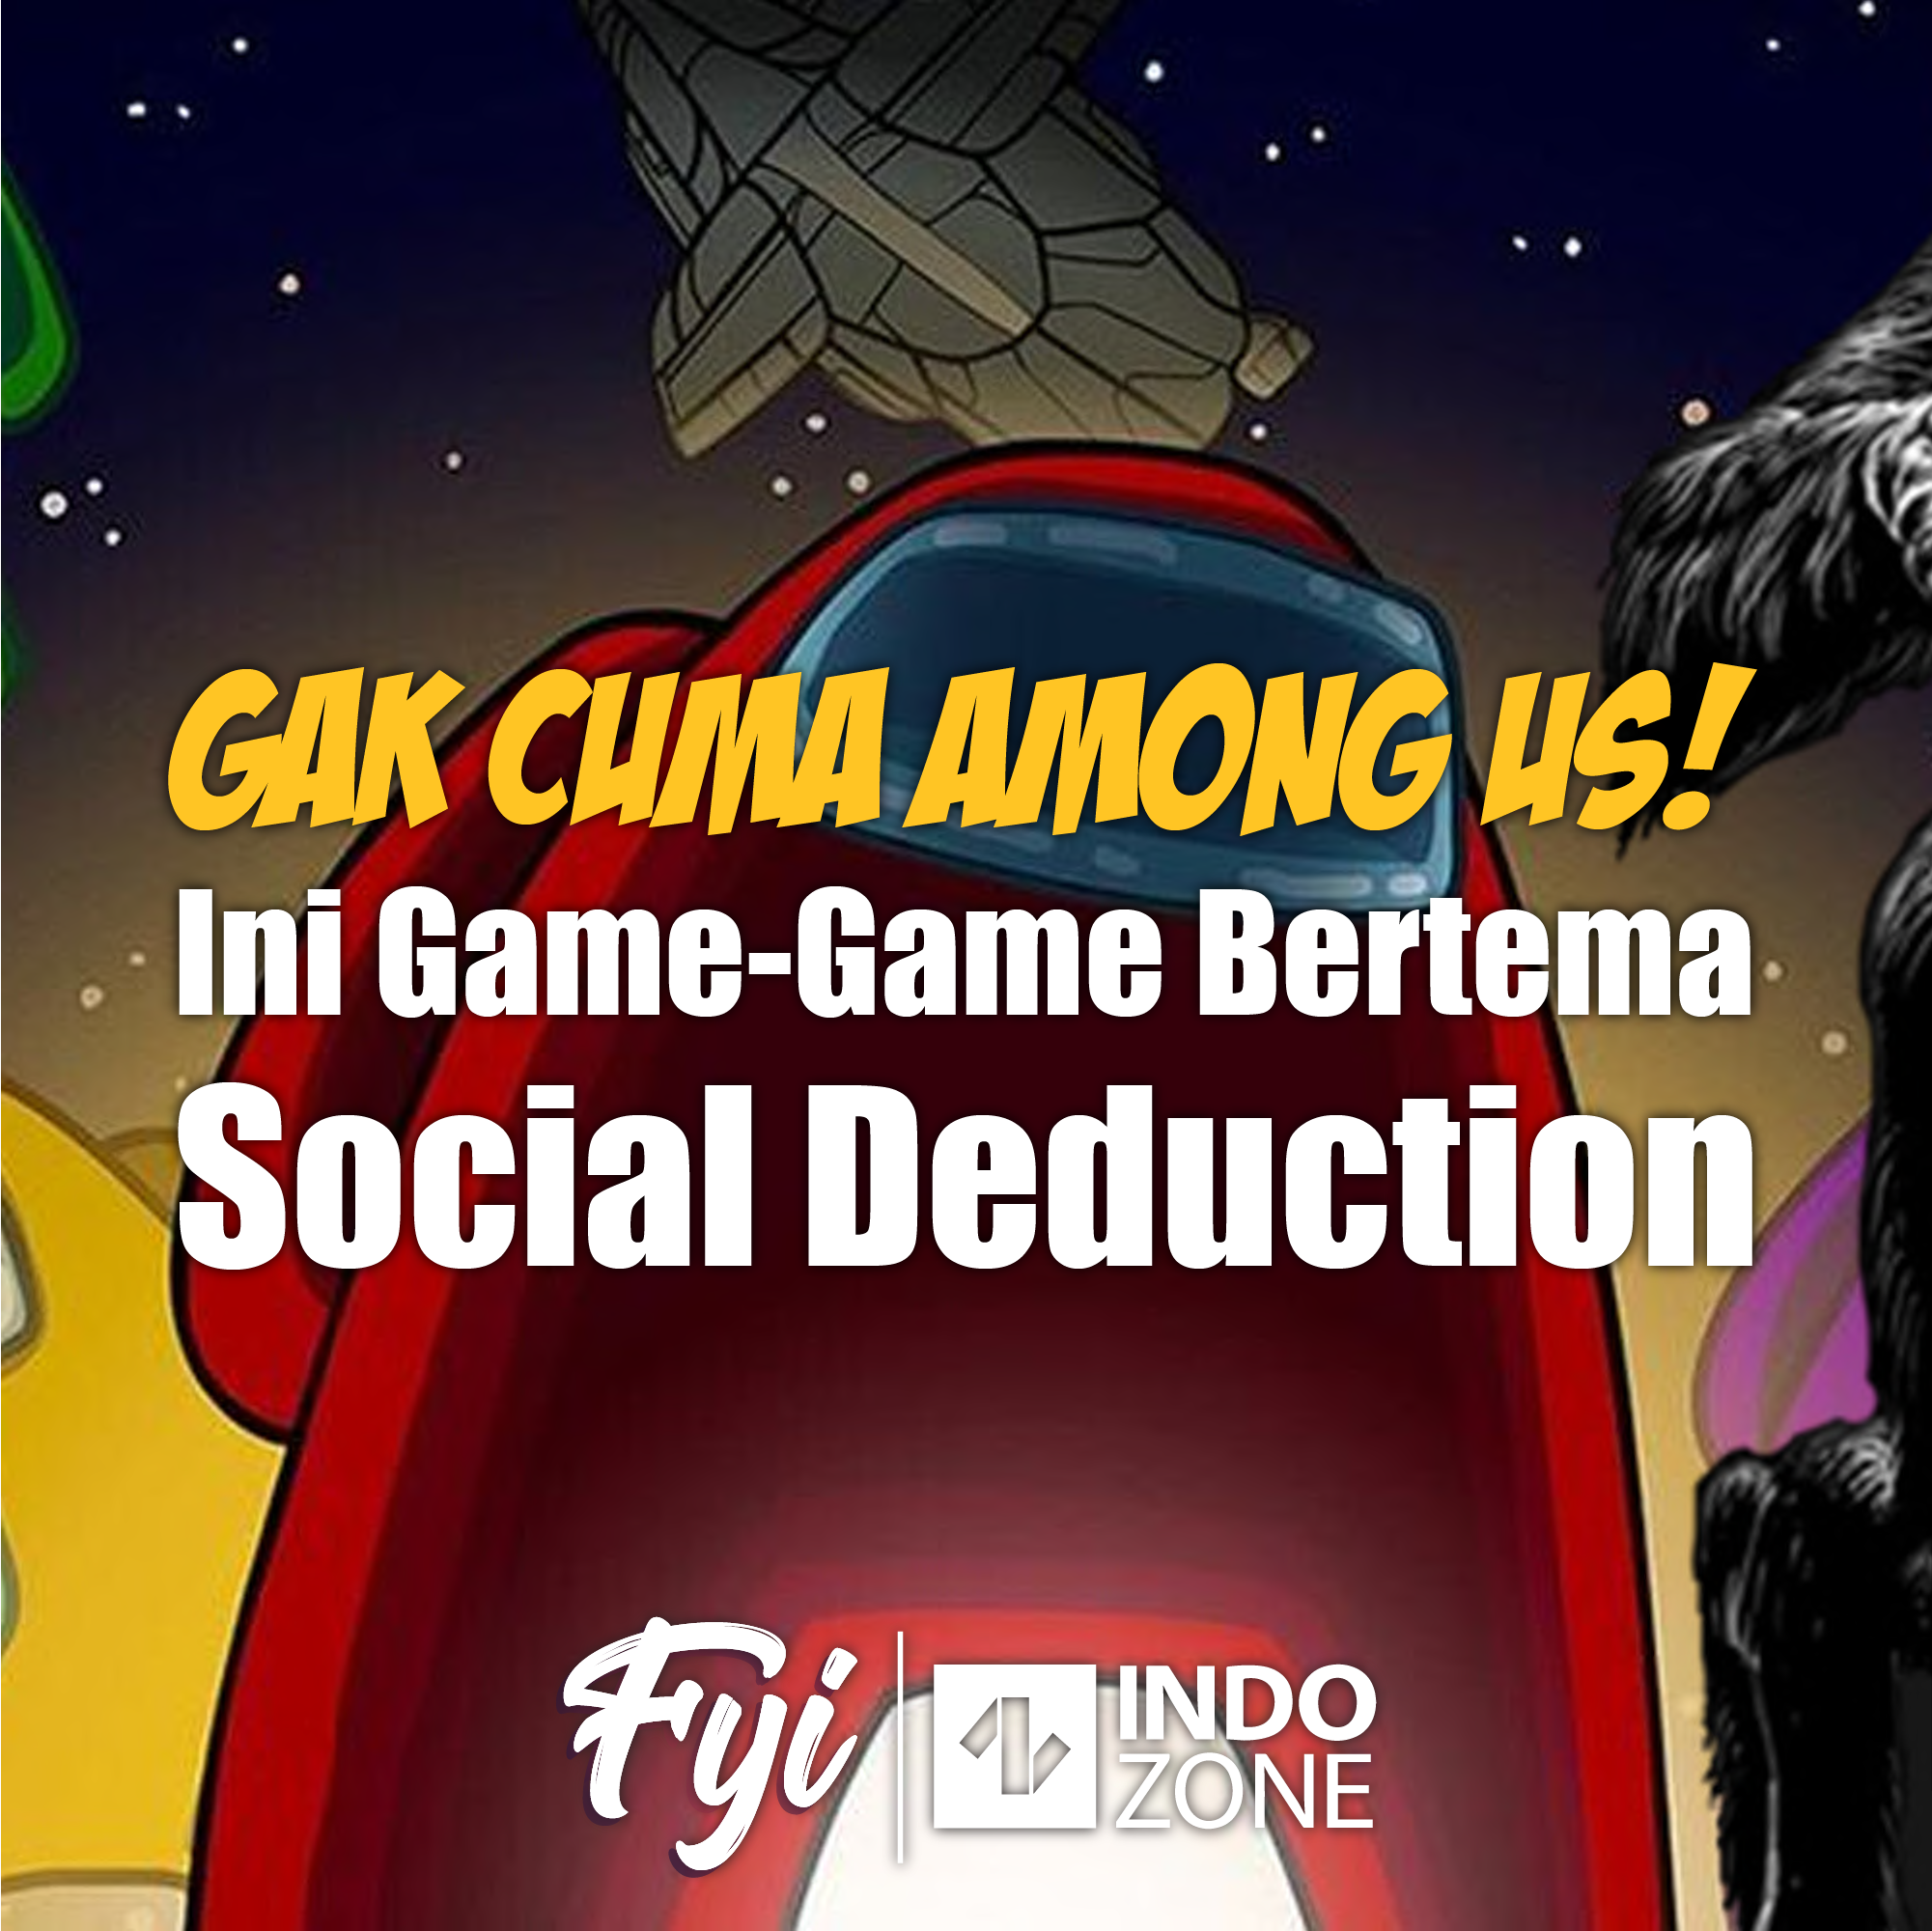 Gak Cuma Among Us! Ini Game-Game Bertema Social Deduction